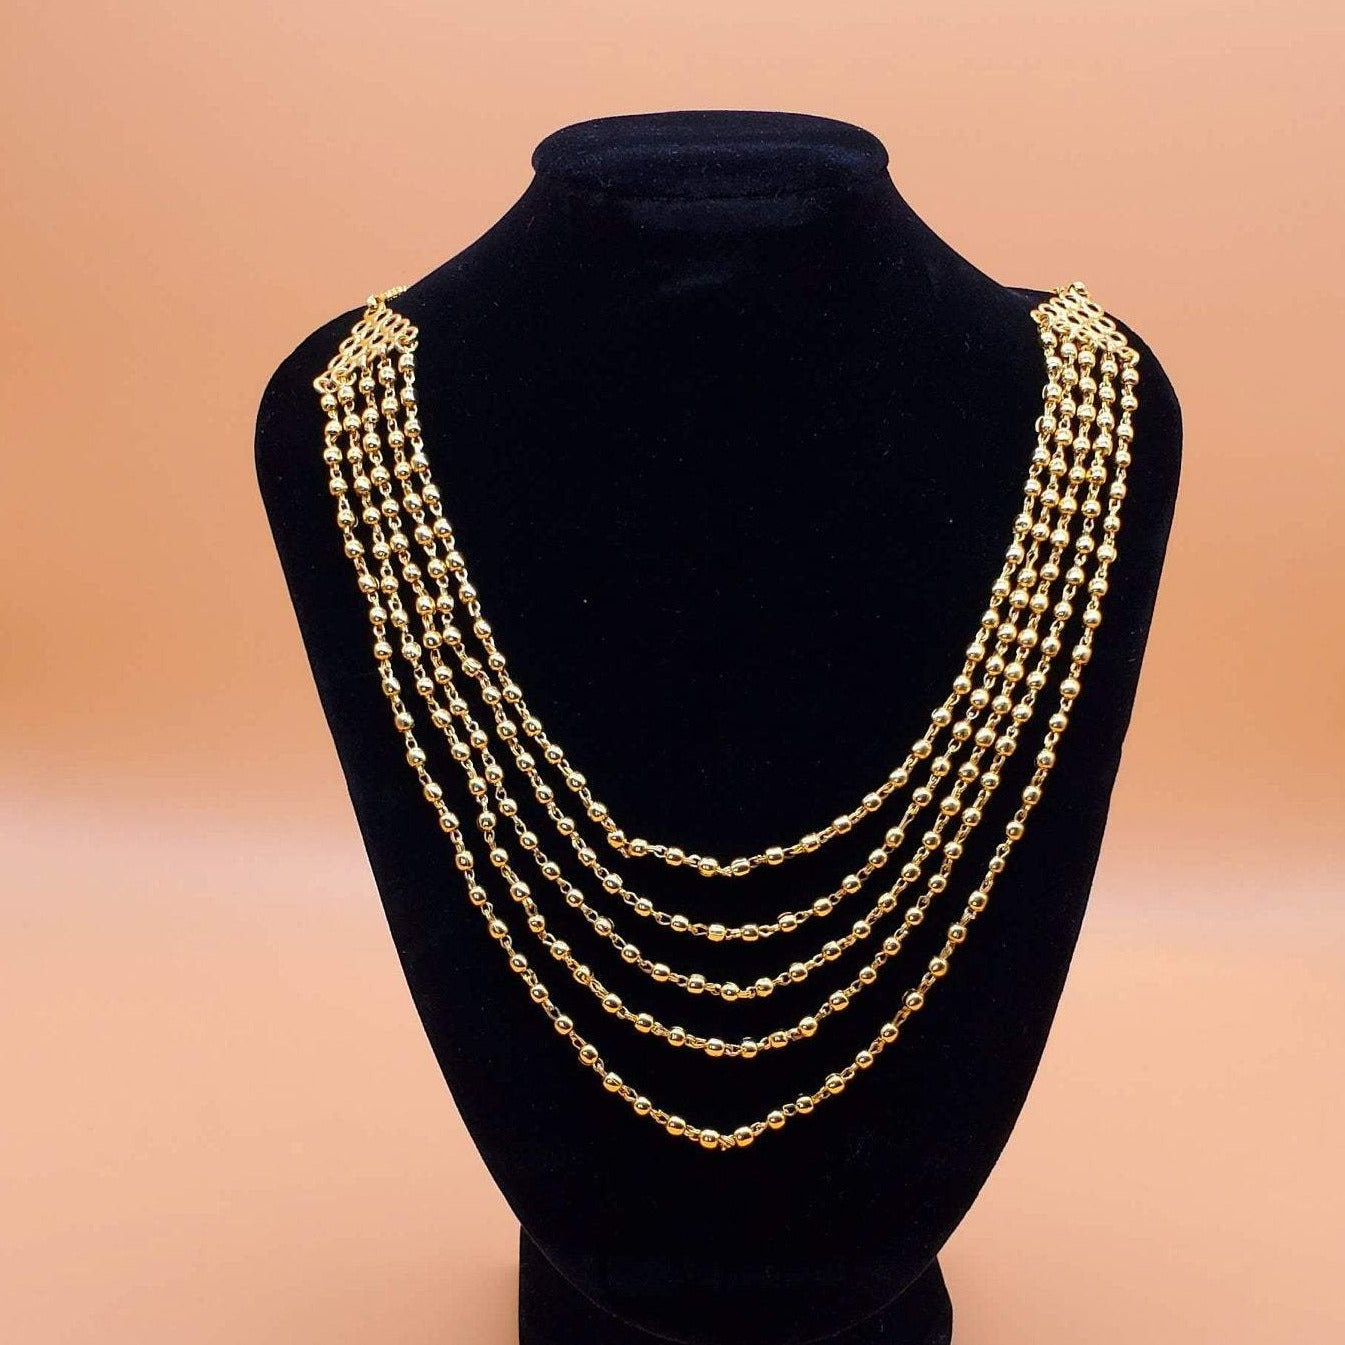 gold chain/multi row ballchain/indian jewelry/goldplated chain/mohan mala/rajawadi gold chain/antique goldmala/highquality designer jewelry